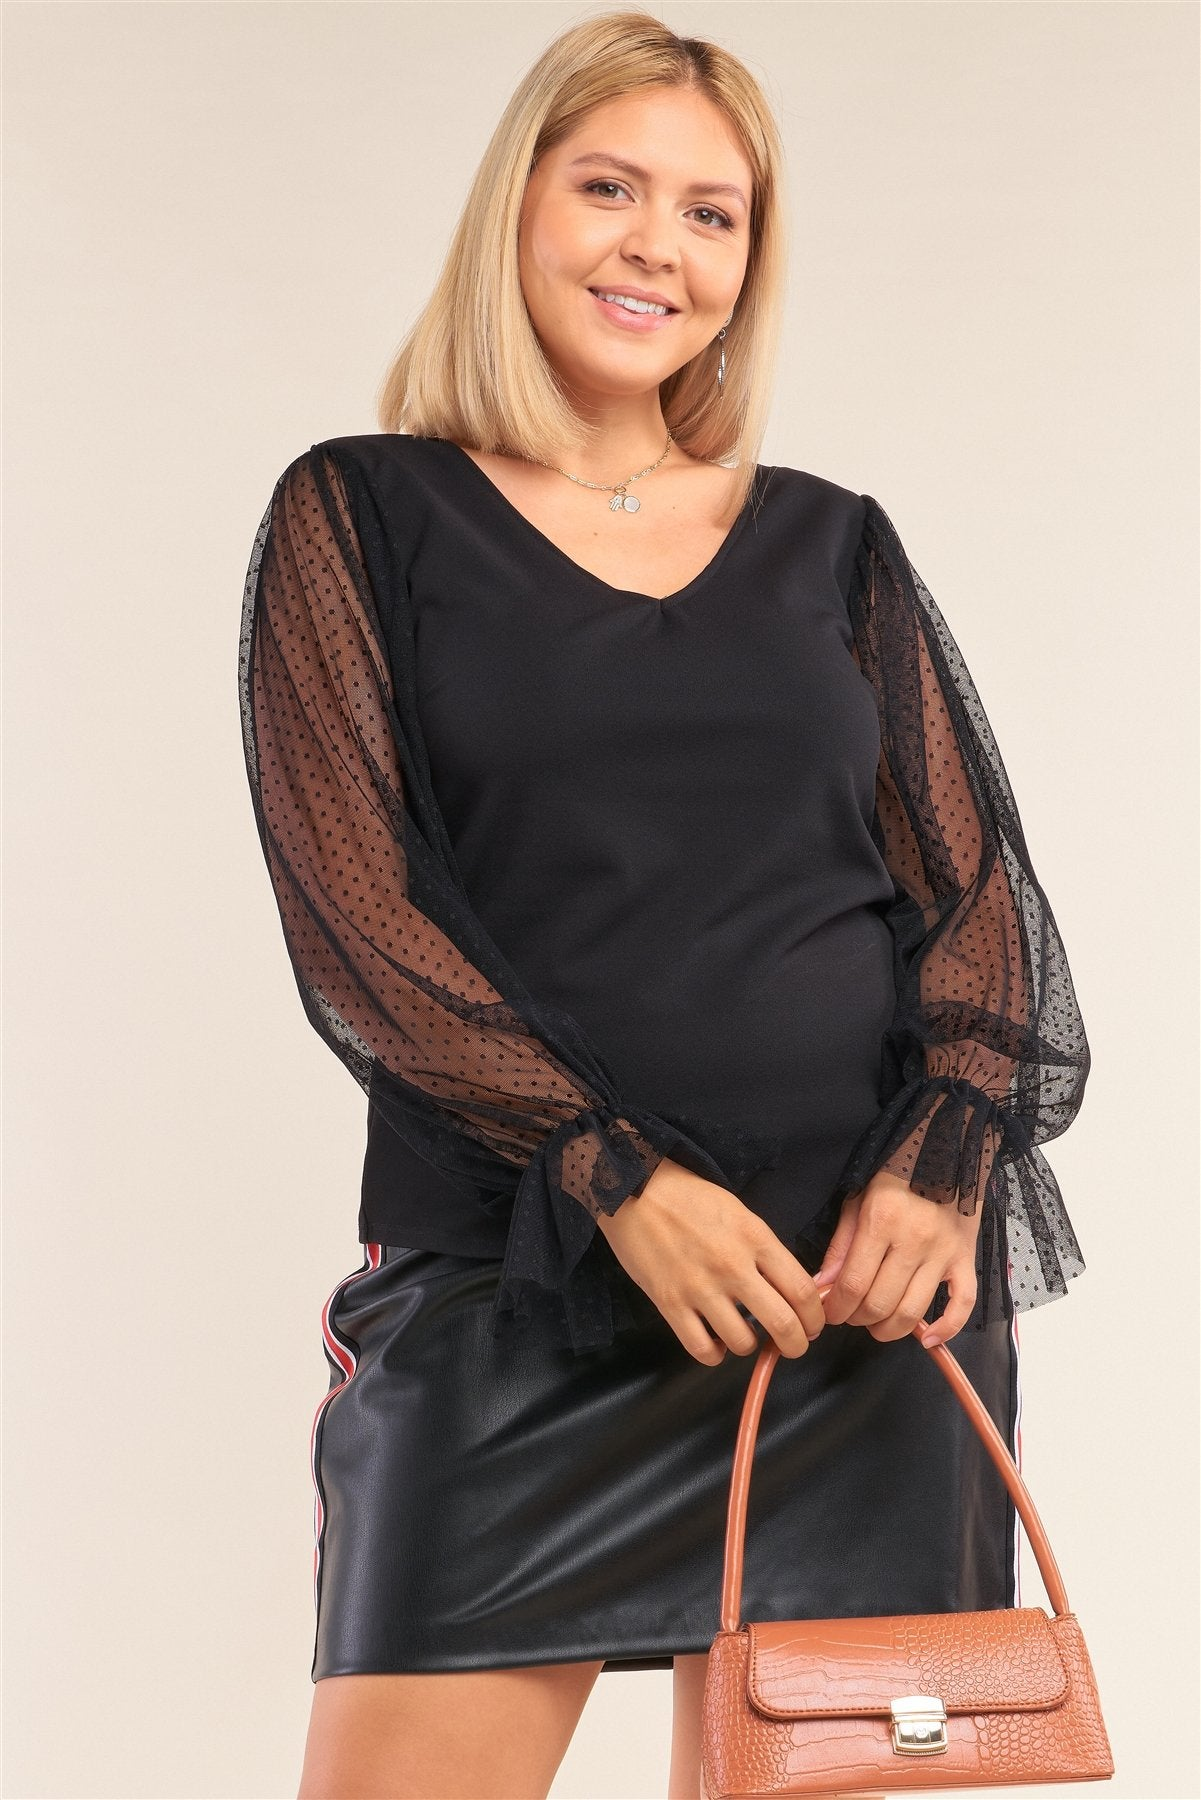 Plus Size Relaxed Fit Deep Plunge V-neck Long Polka Dot Mesh Balloon Sleeve Top - Absolute Fashion 2020